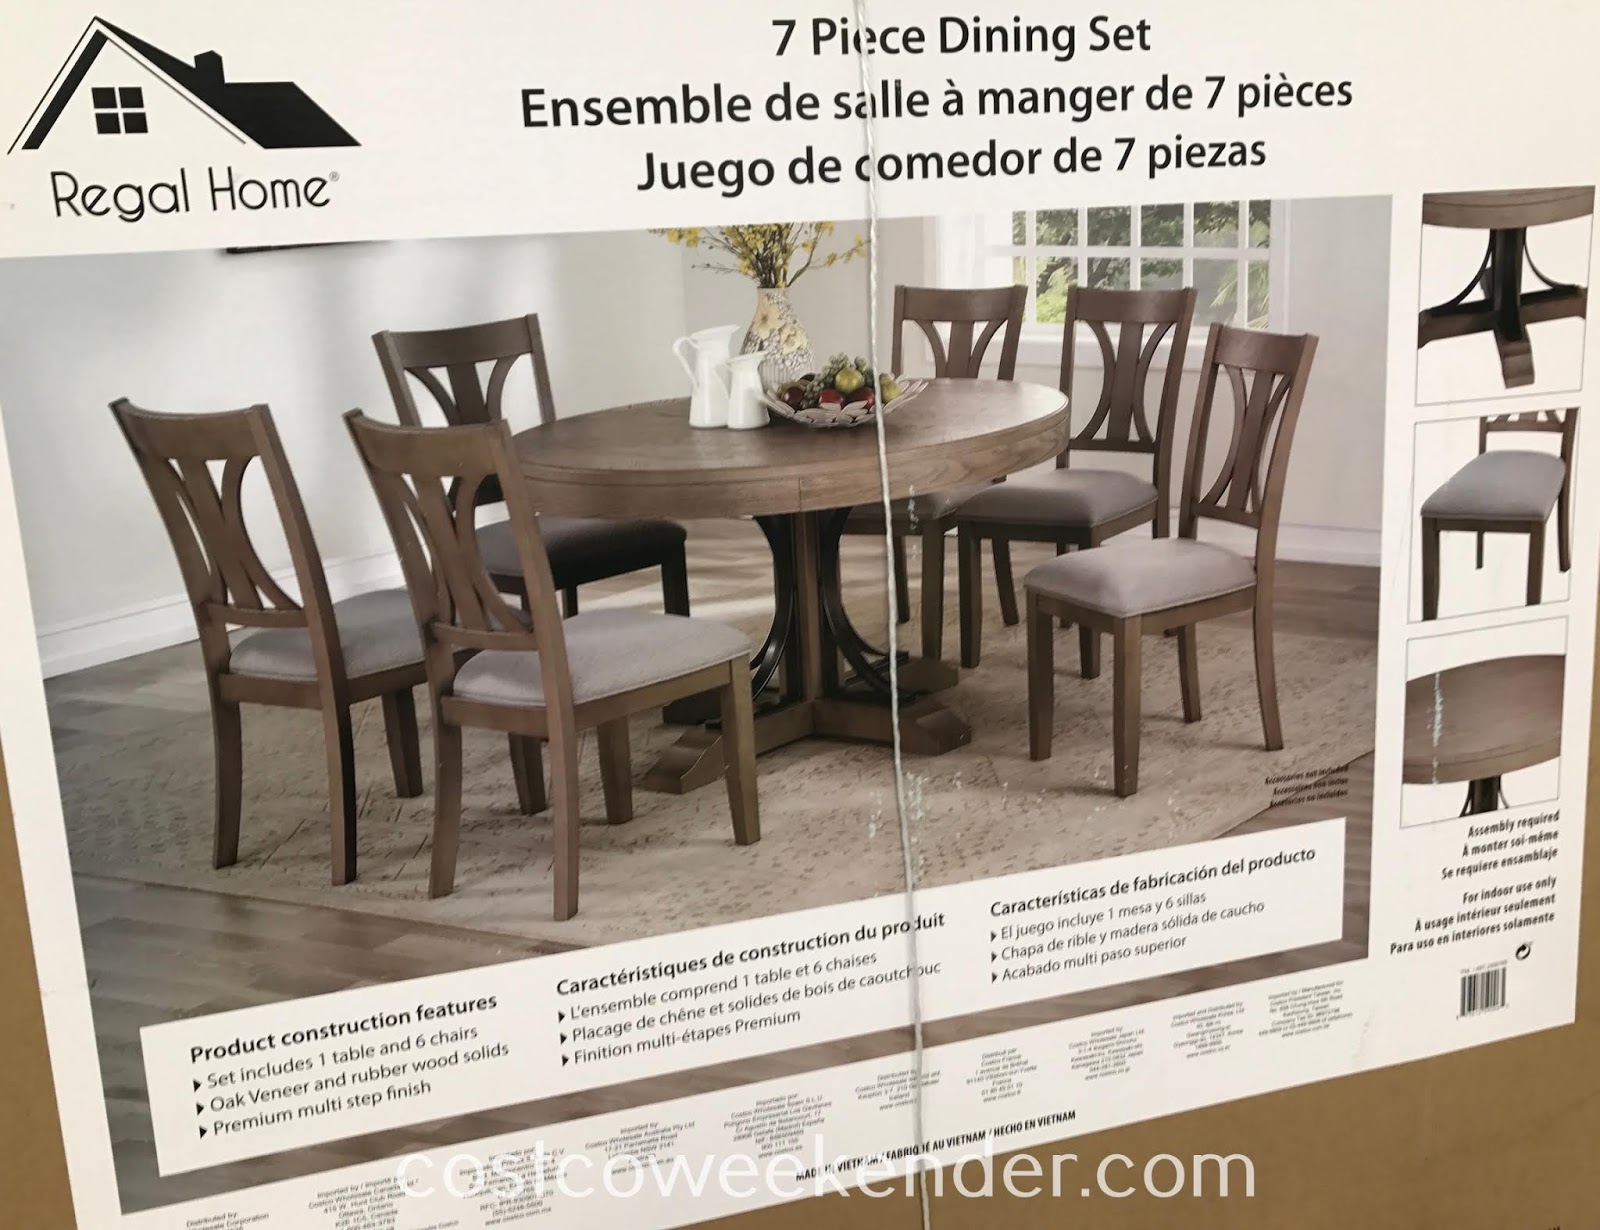 Costco 2000789 - Regal Home 7-piece Dining Set: elegant with a classic look